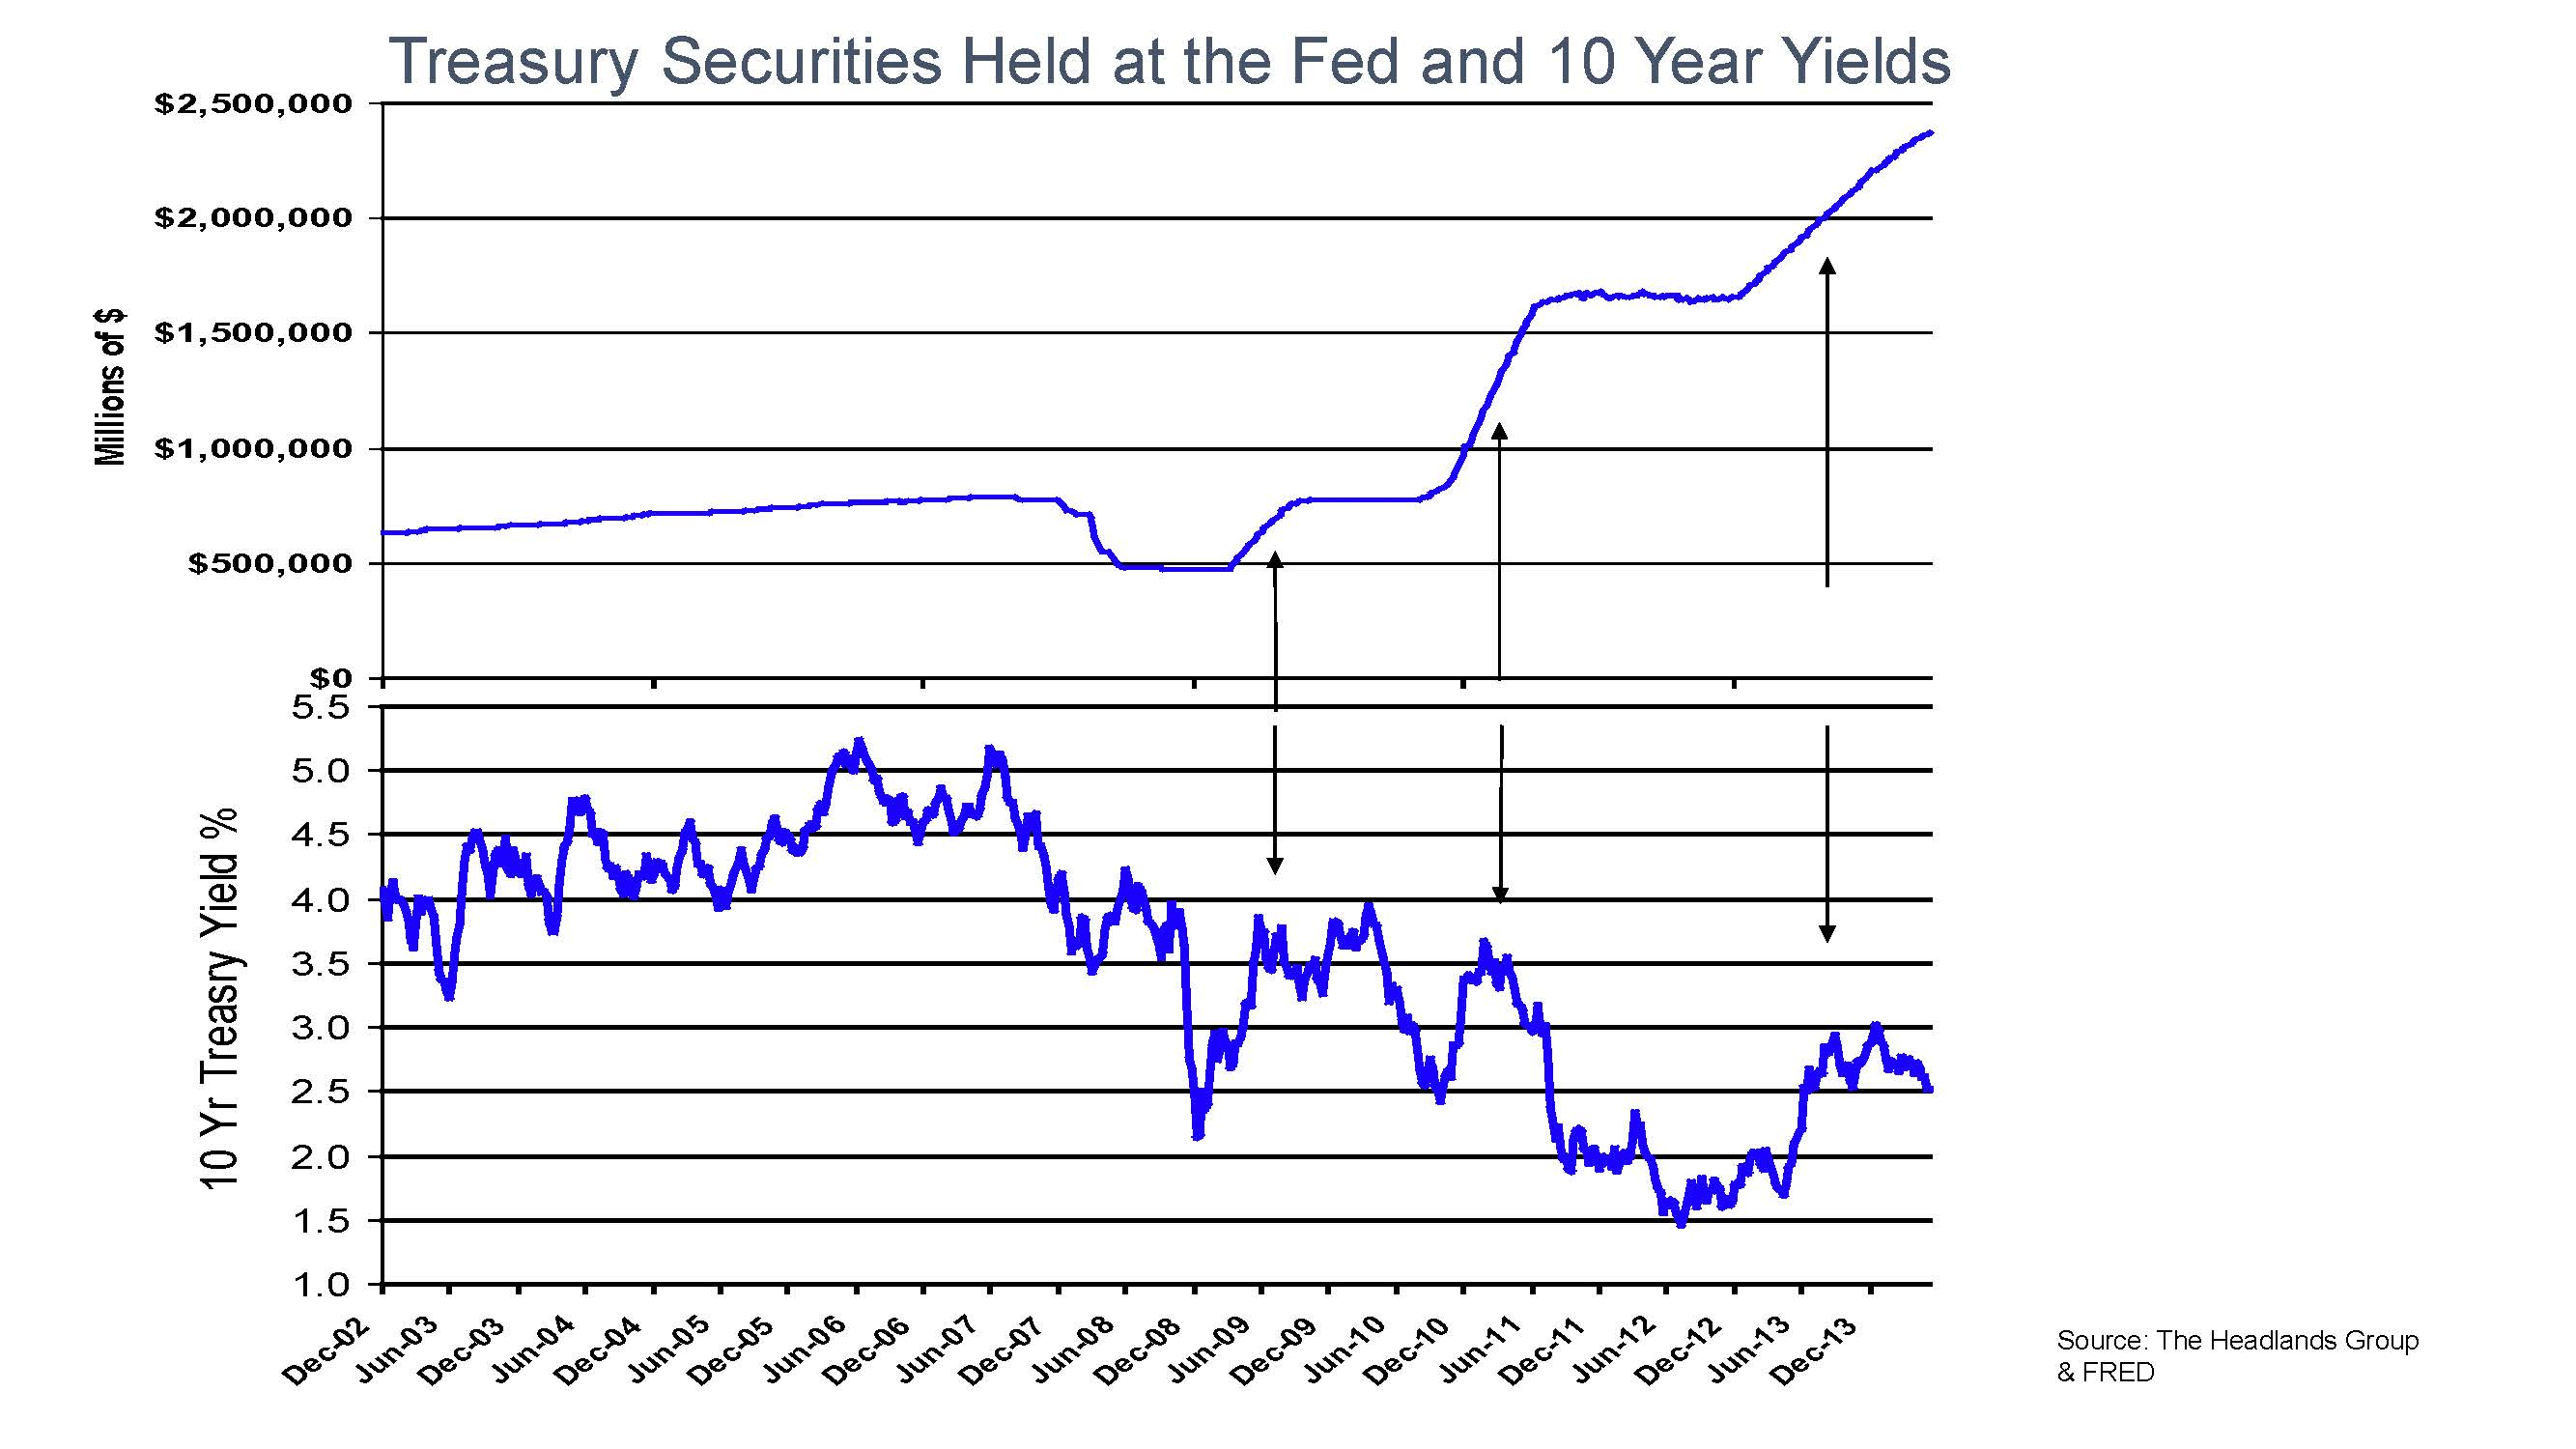 QE and bond yields